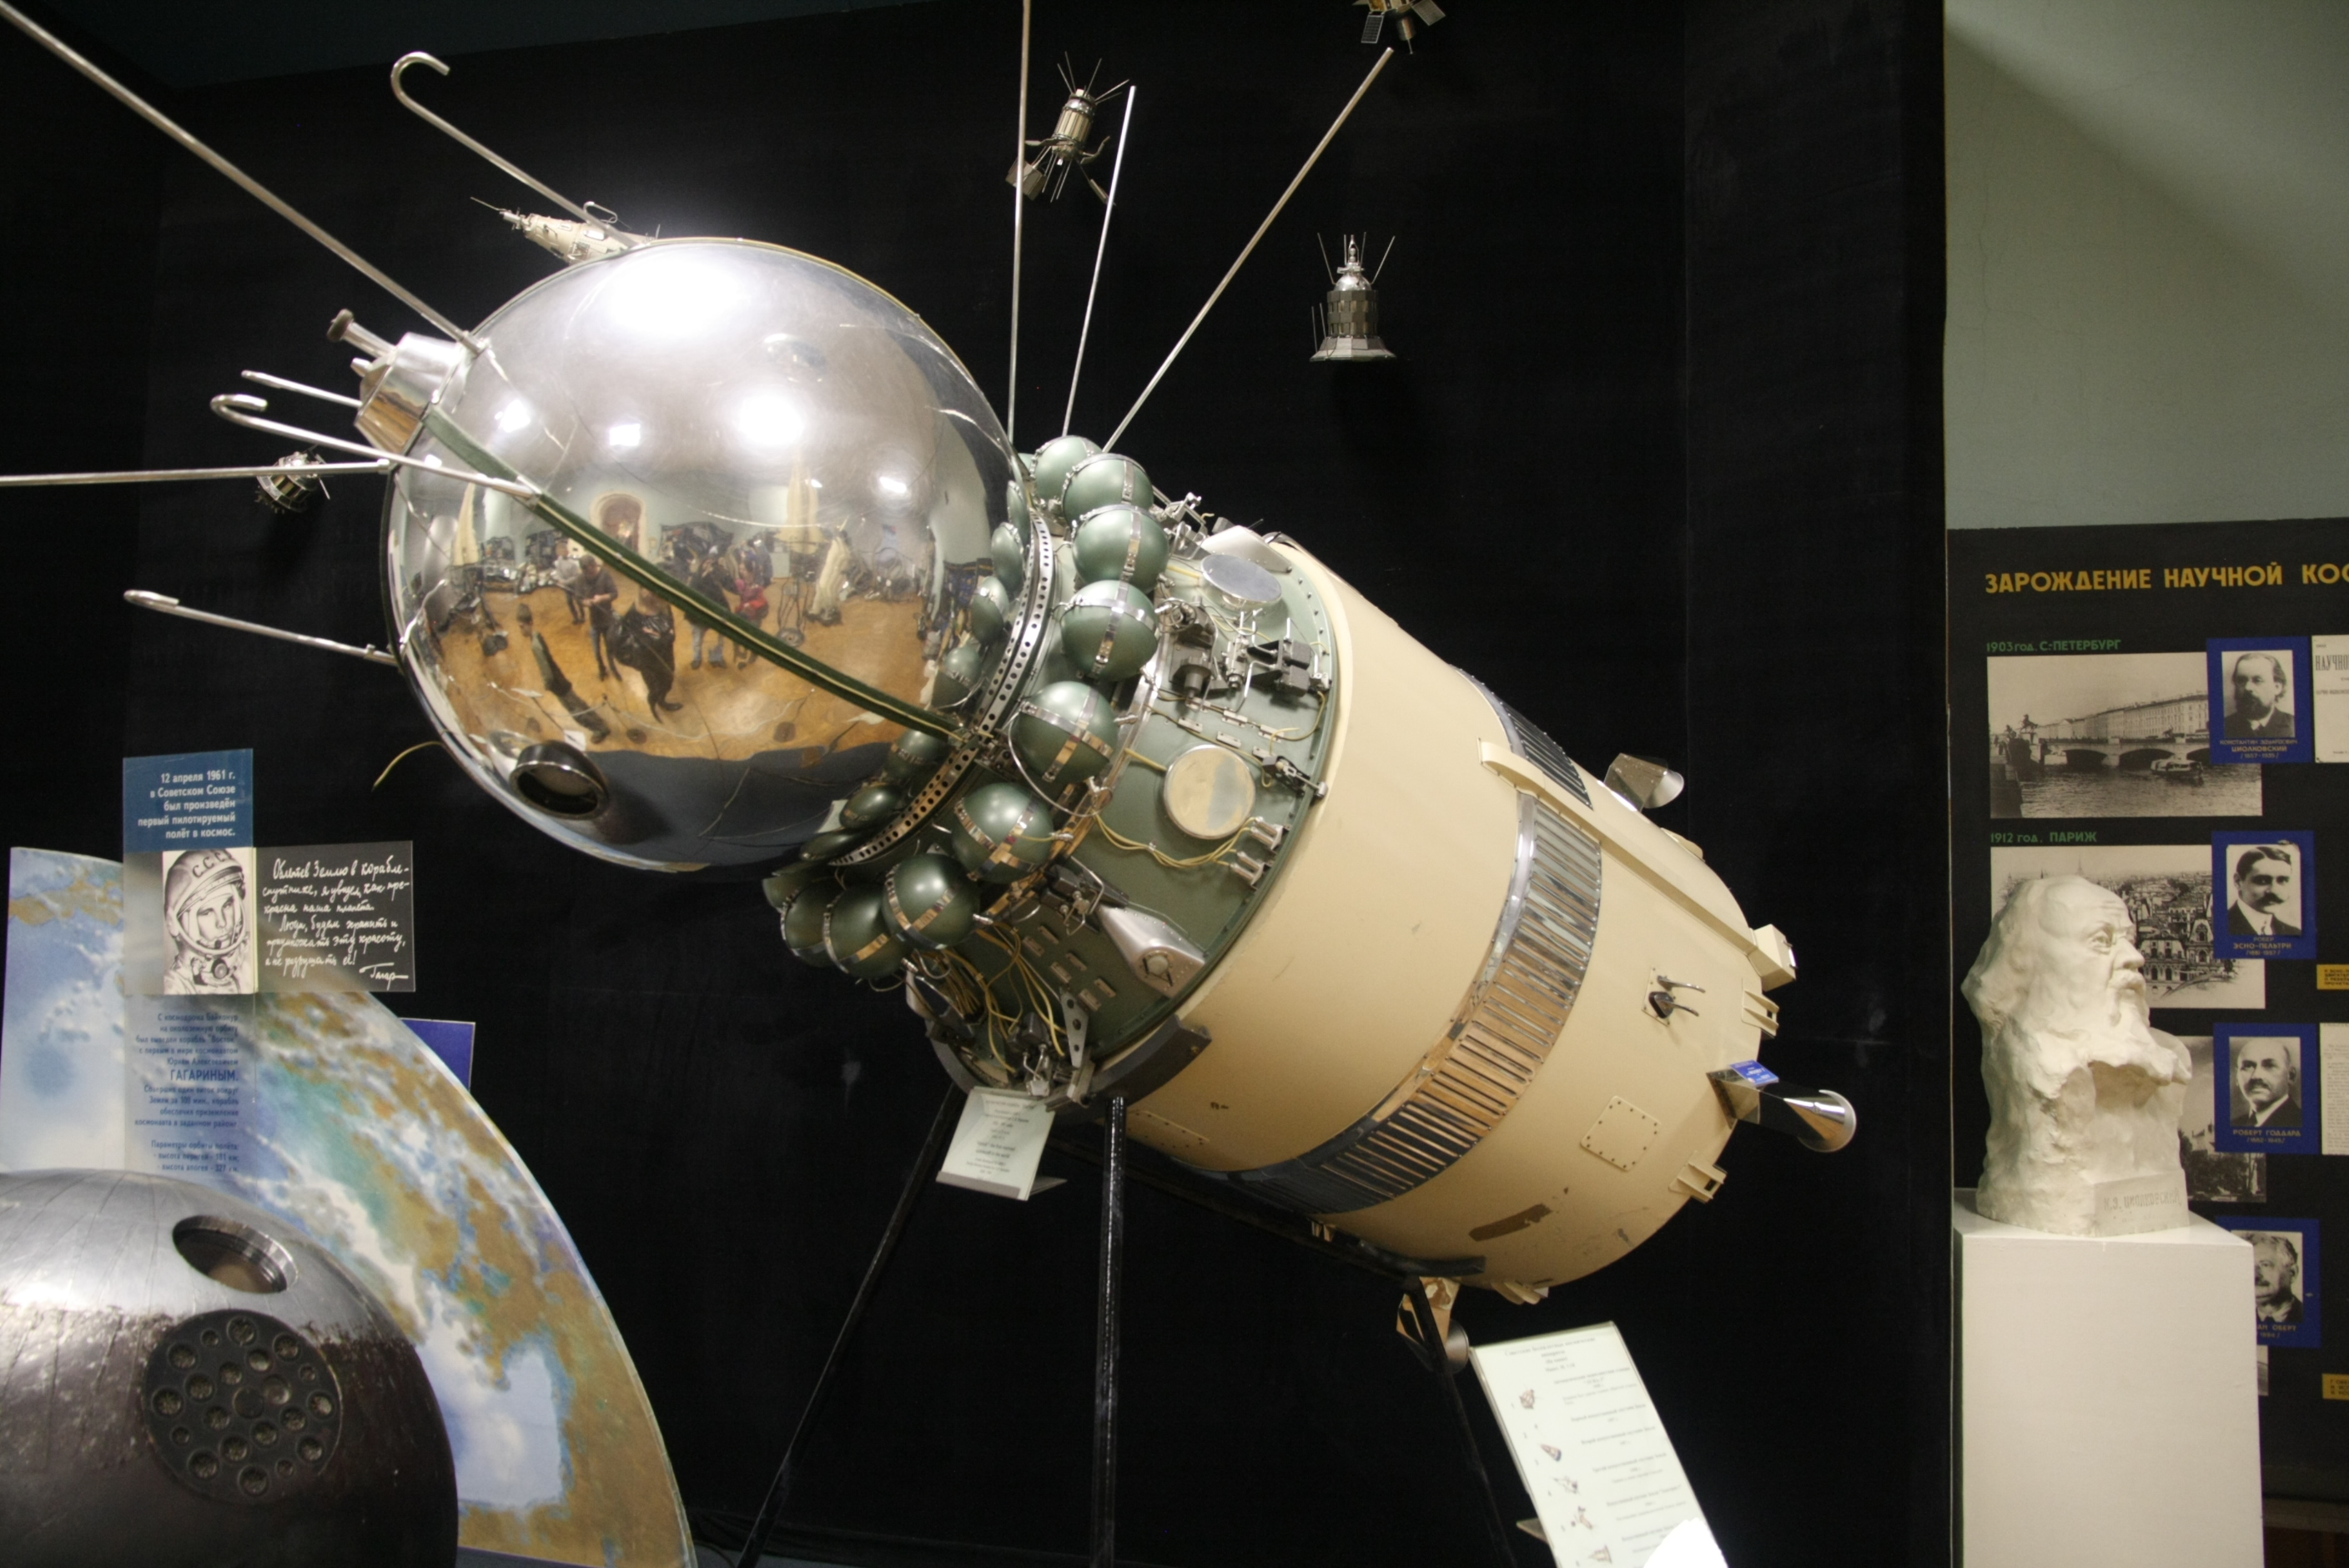 vostok spacecraft - photo #12